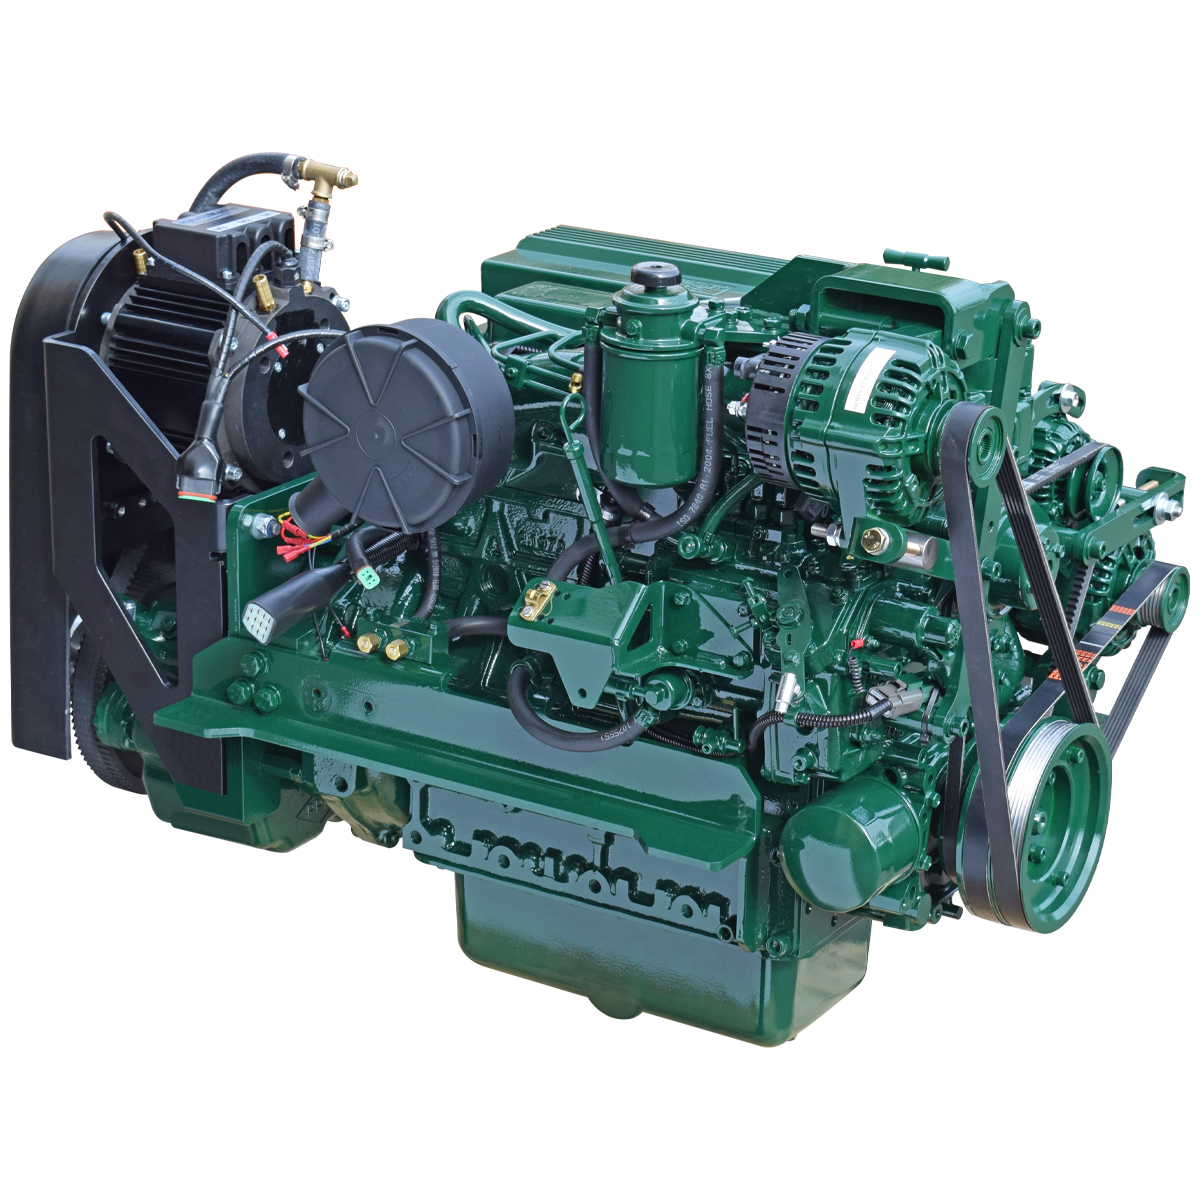 Keel Cooled Hybrid Propulsion Marine Propulsion Engines Beta Marine